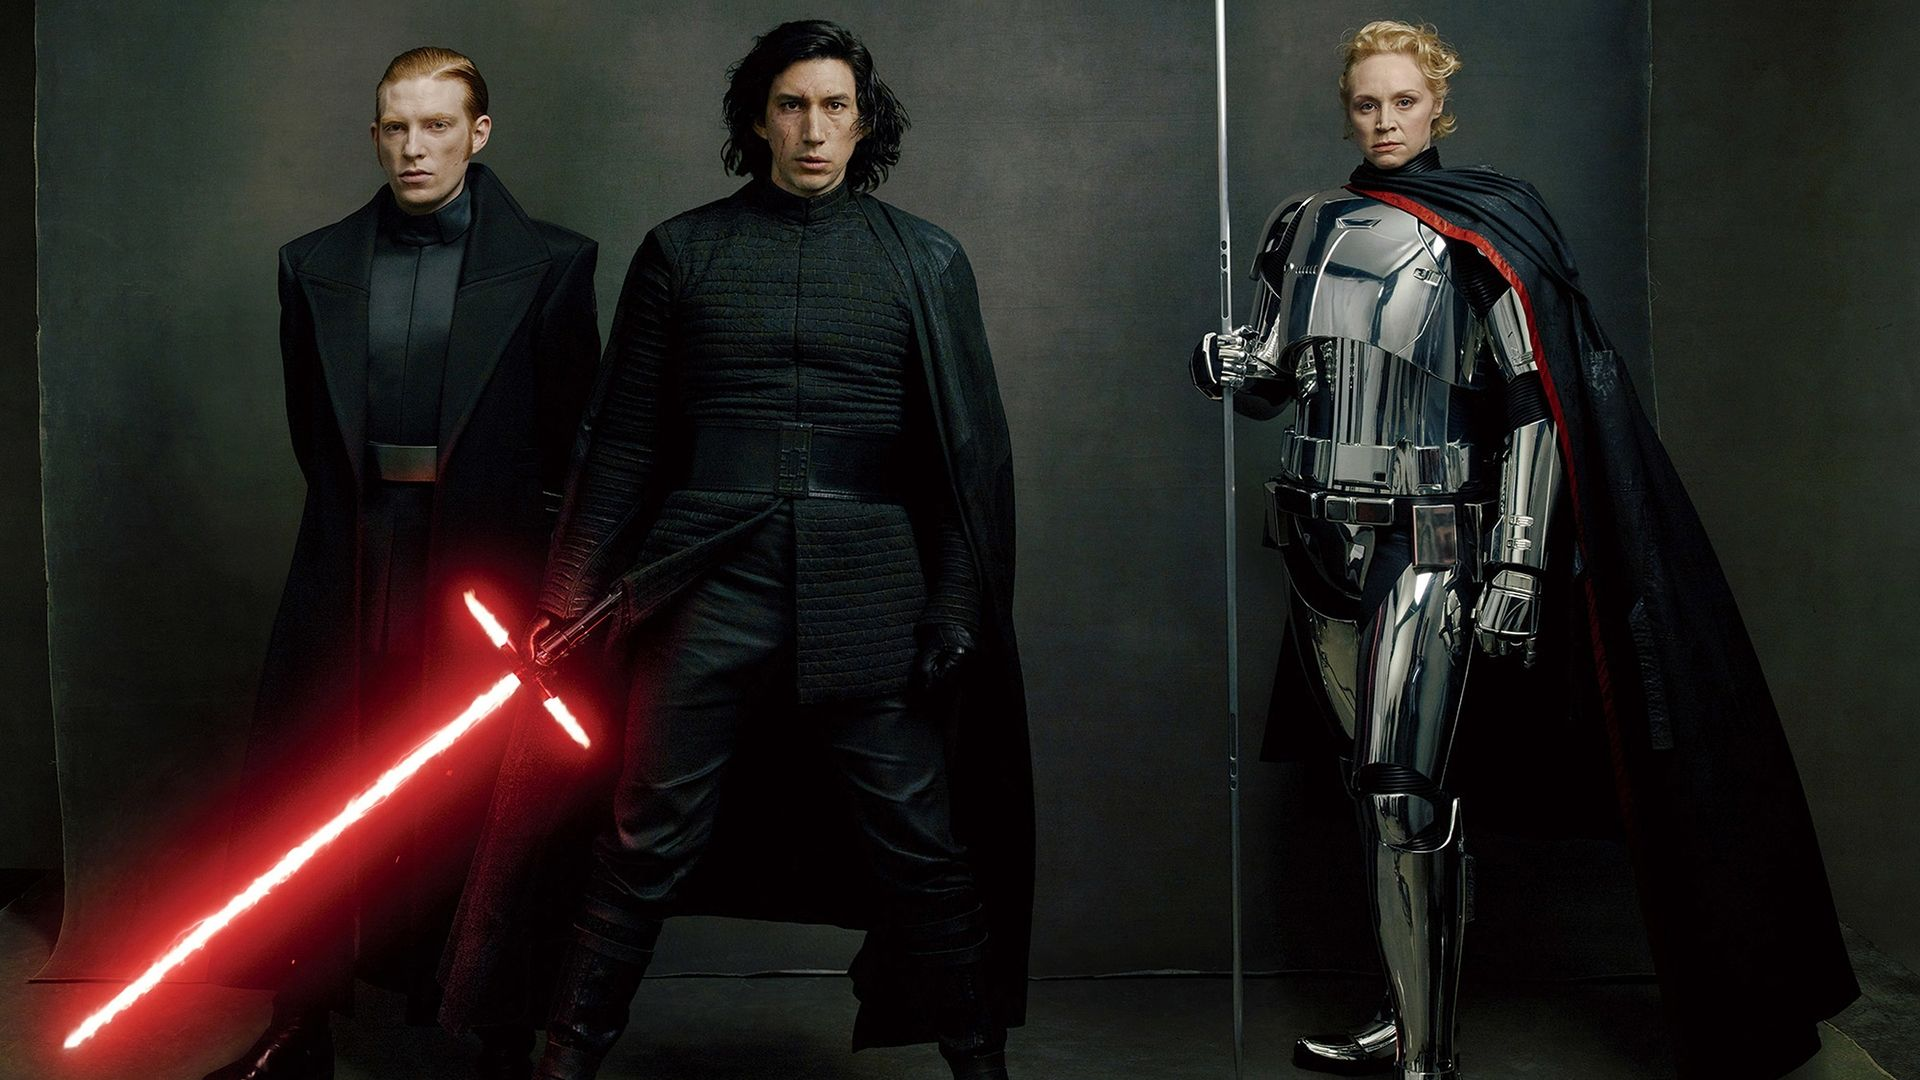 General Hux, Kylo Ren, Captain Phasma Photography - ID: 42007 ...